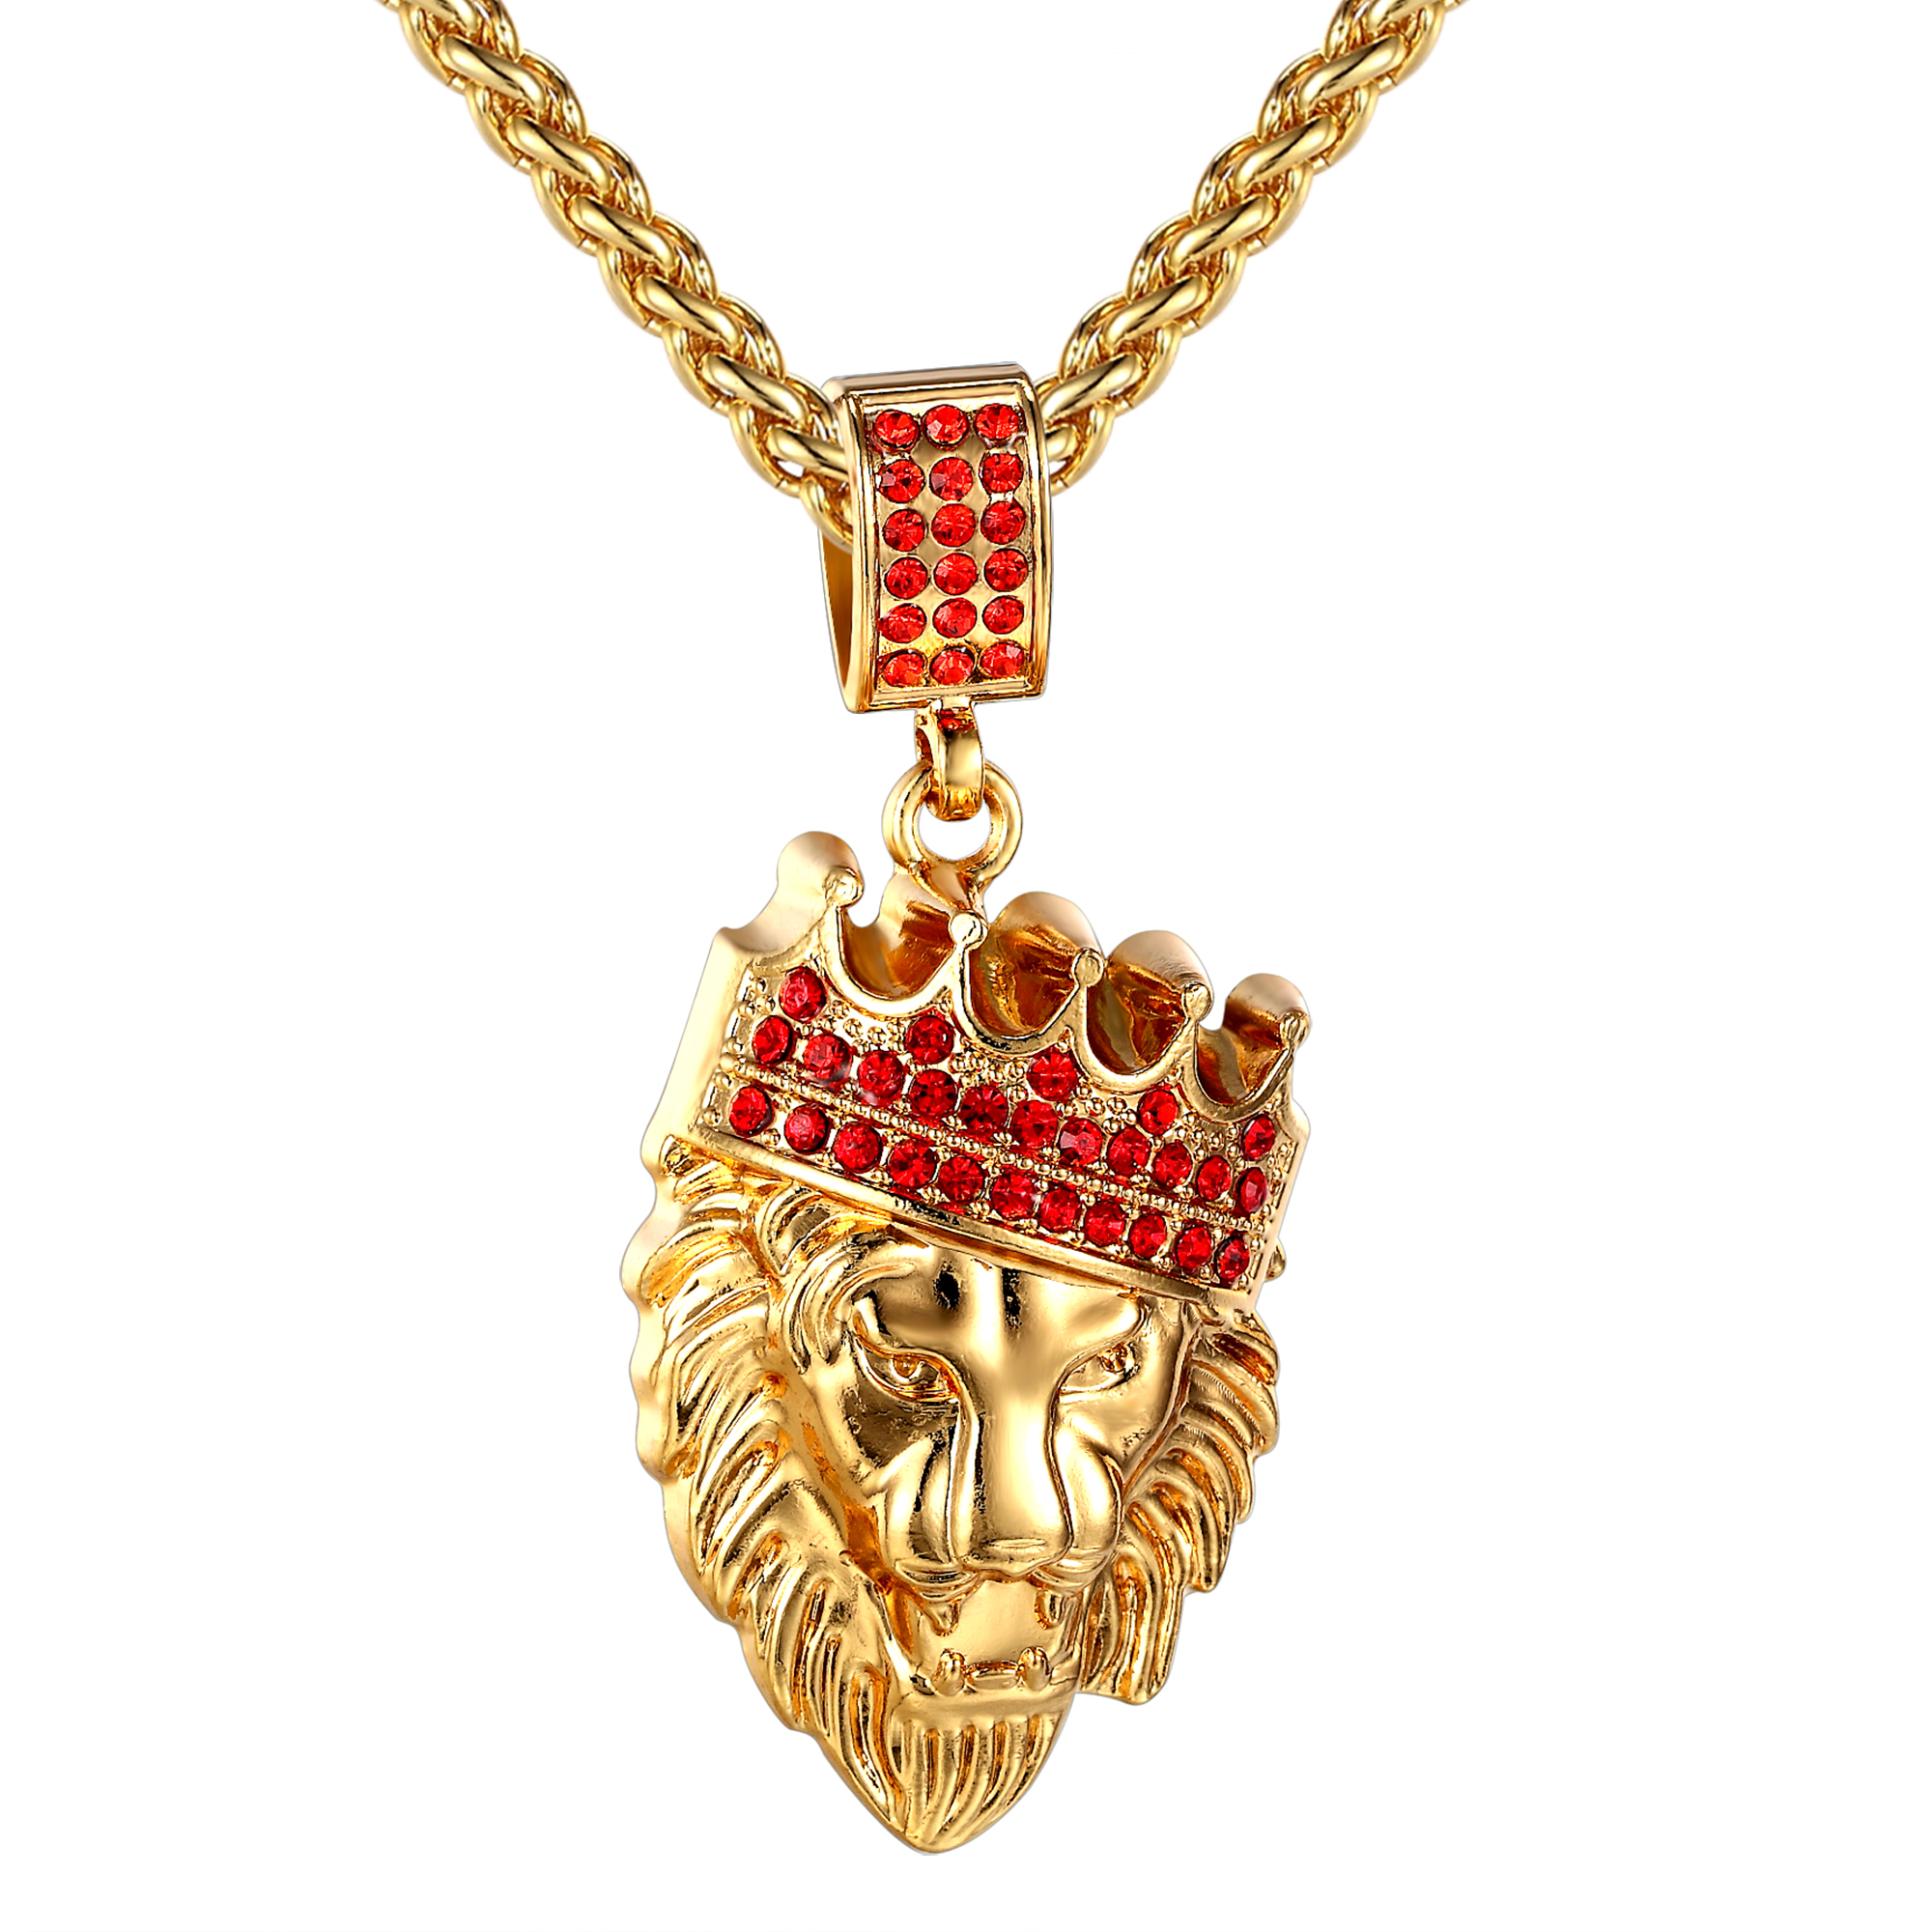 Wholesale 2017 new red crystal lion pendant necklace blue cz men mens iced out bling bling plug pendant necklace gold silver color charm micro pave full rhinestone hip hop jewelry aloadofball Choice Image